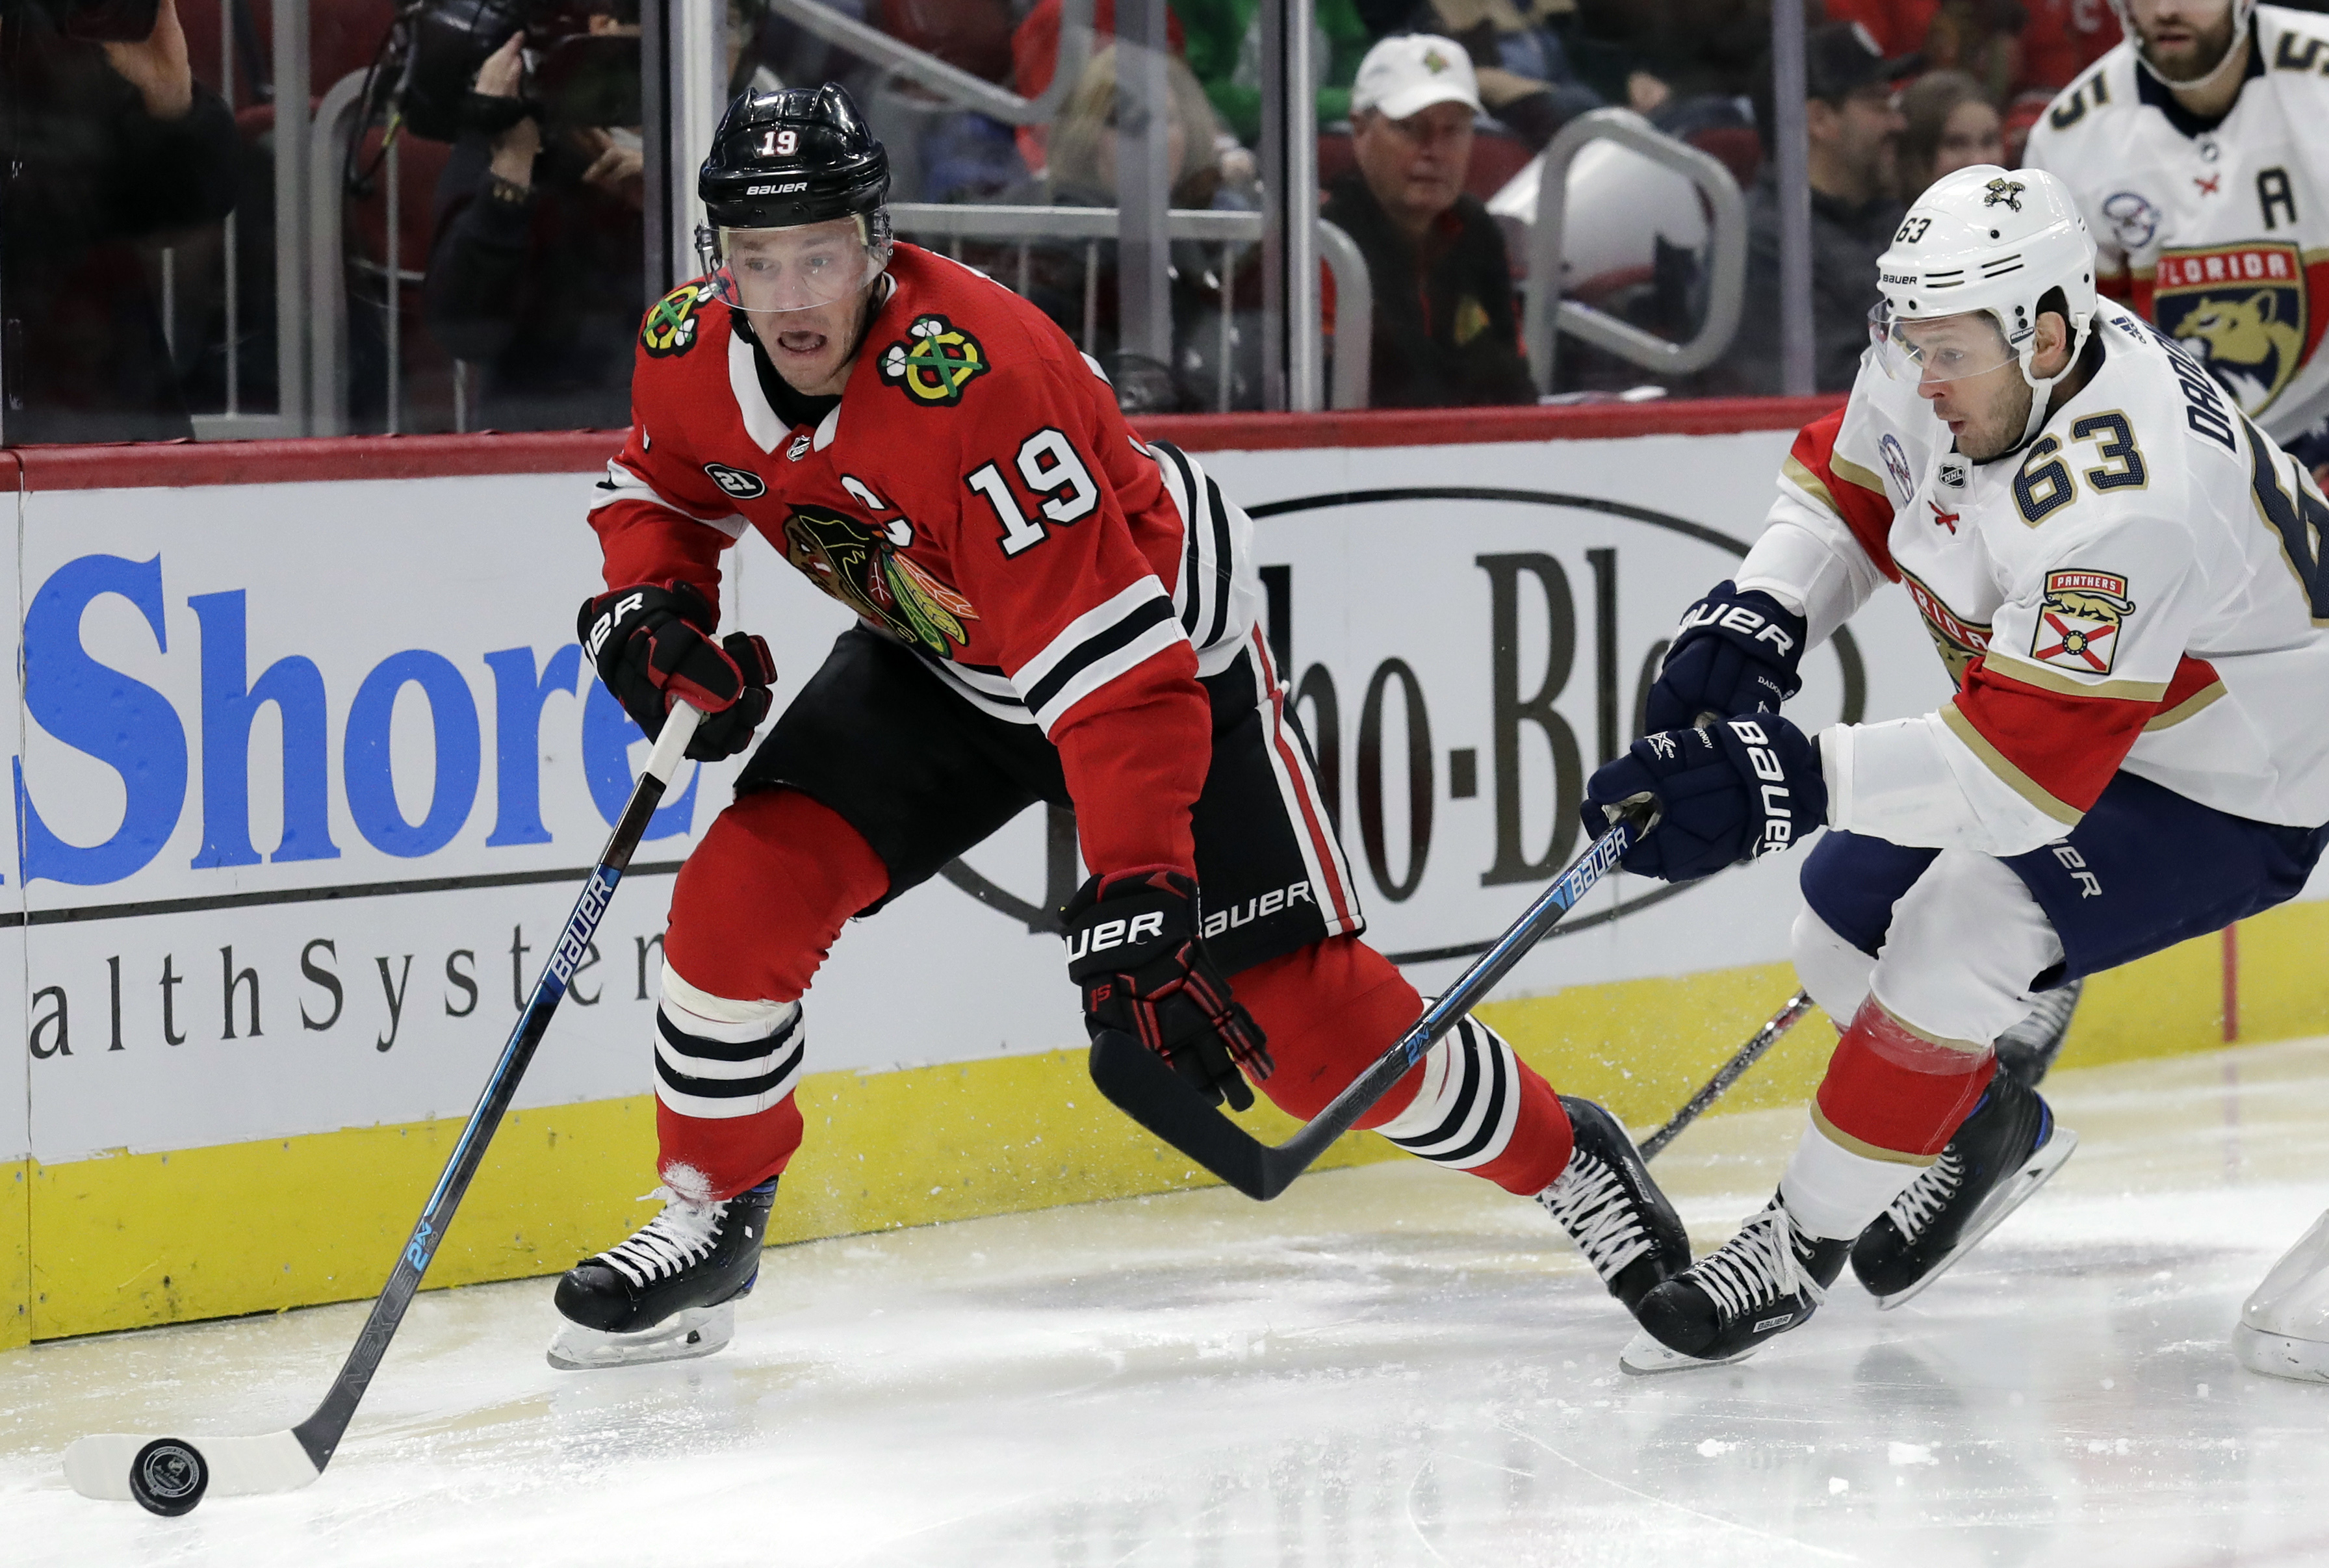 Hawryluk nets first 2 NHL goals, Panthers beat Chicago 6-3